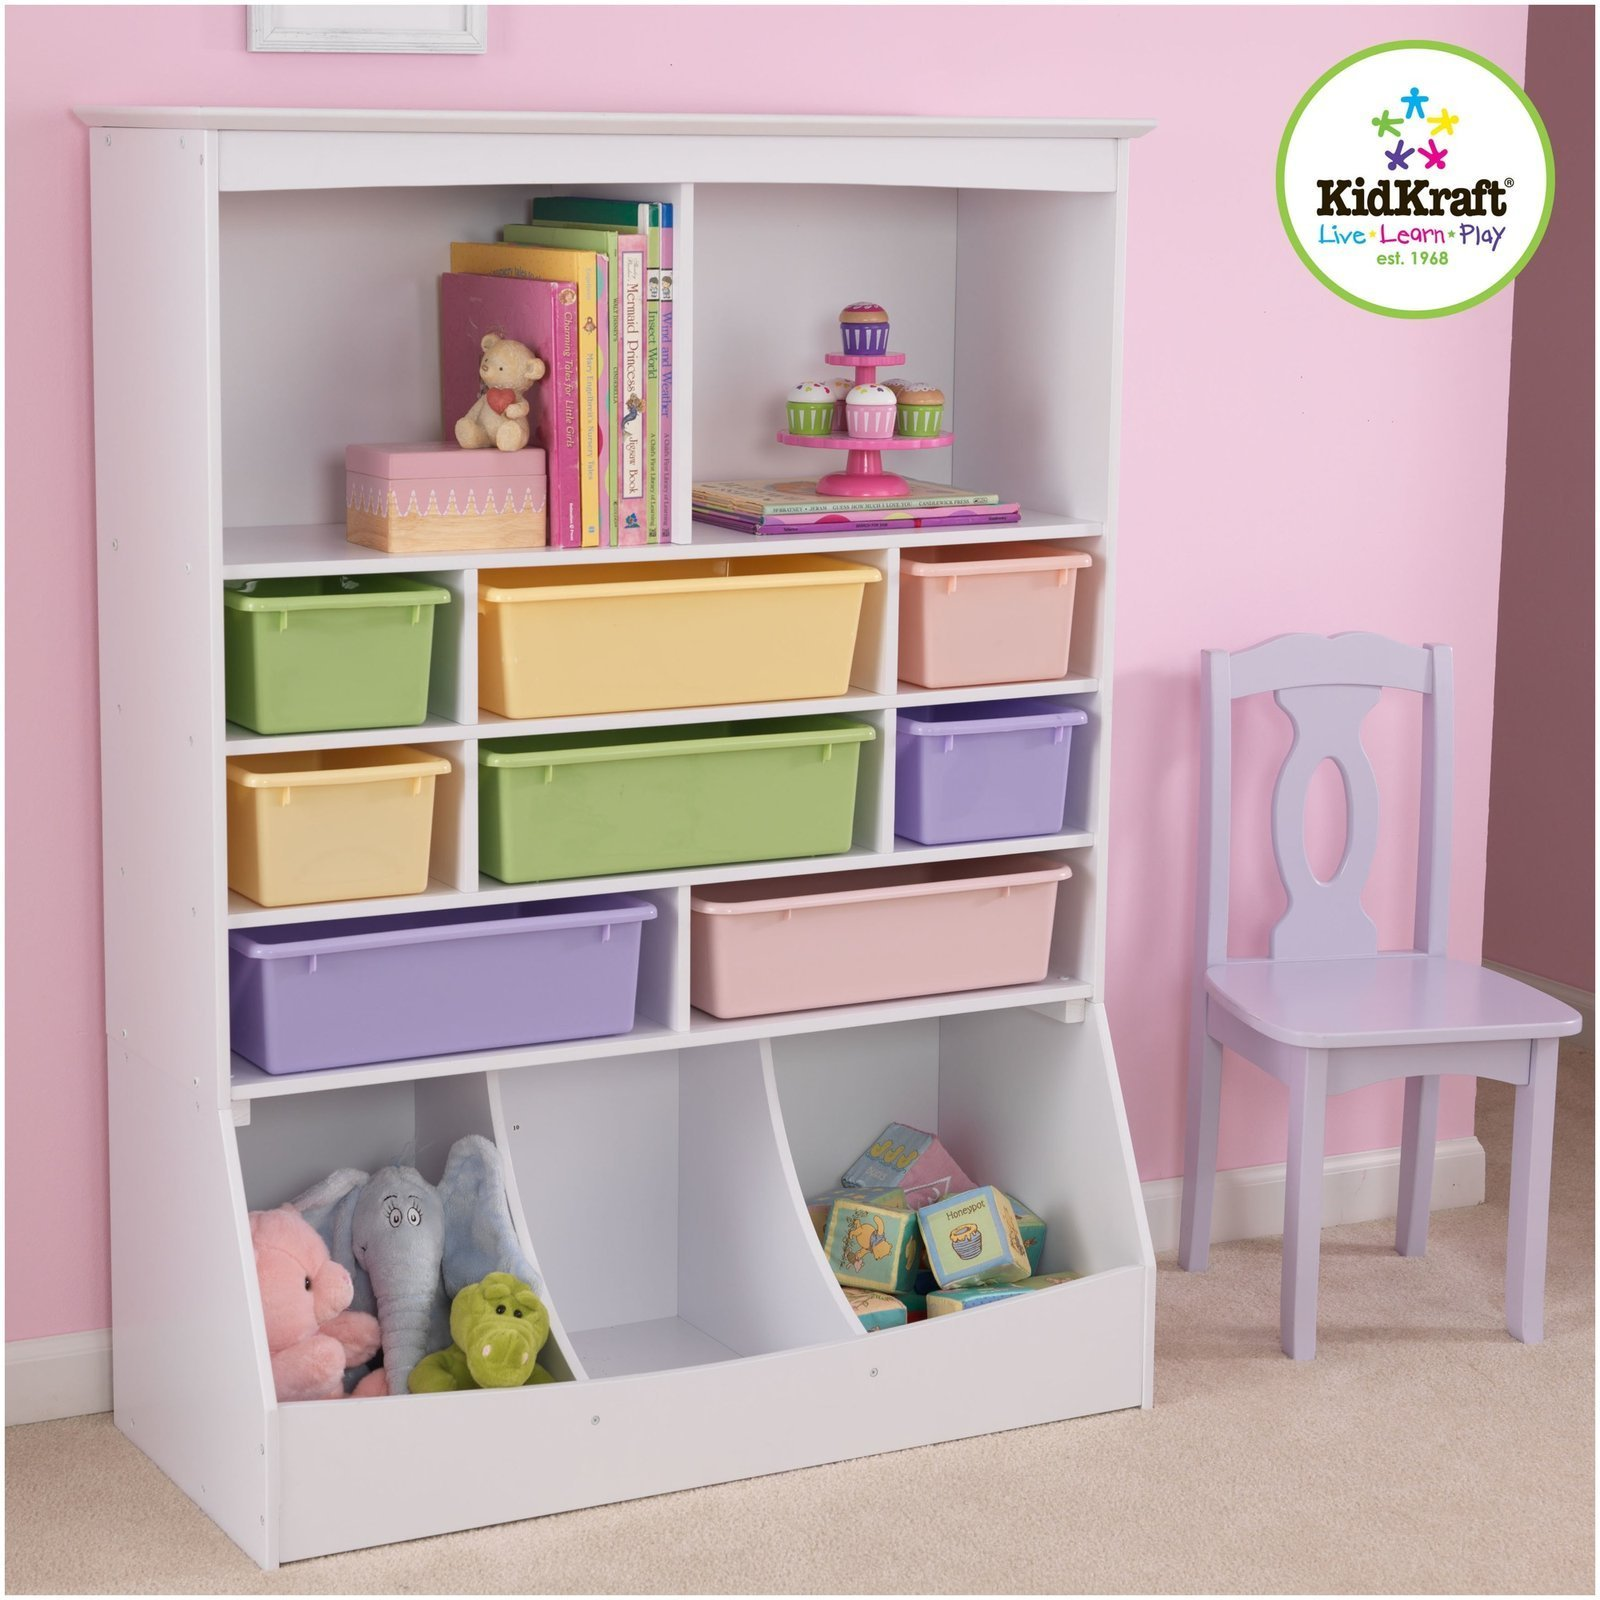 KidKraft Wooden Wall Storage Unit with 8 Plastic Bins & 13 Compartments - White by KidKraft